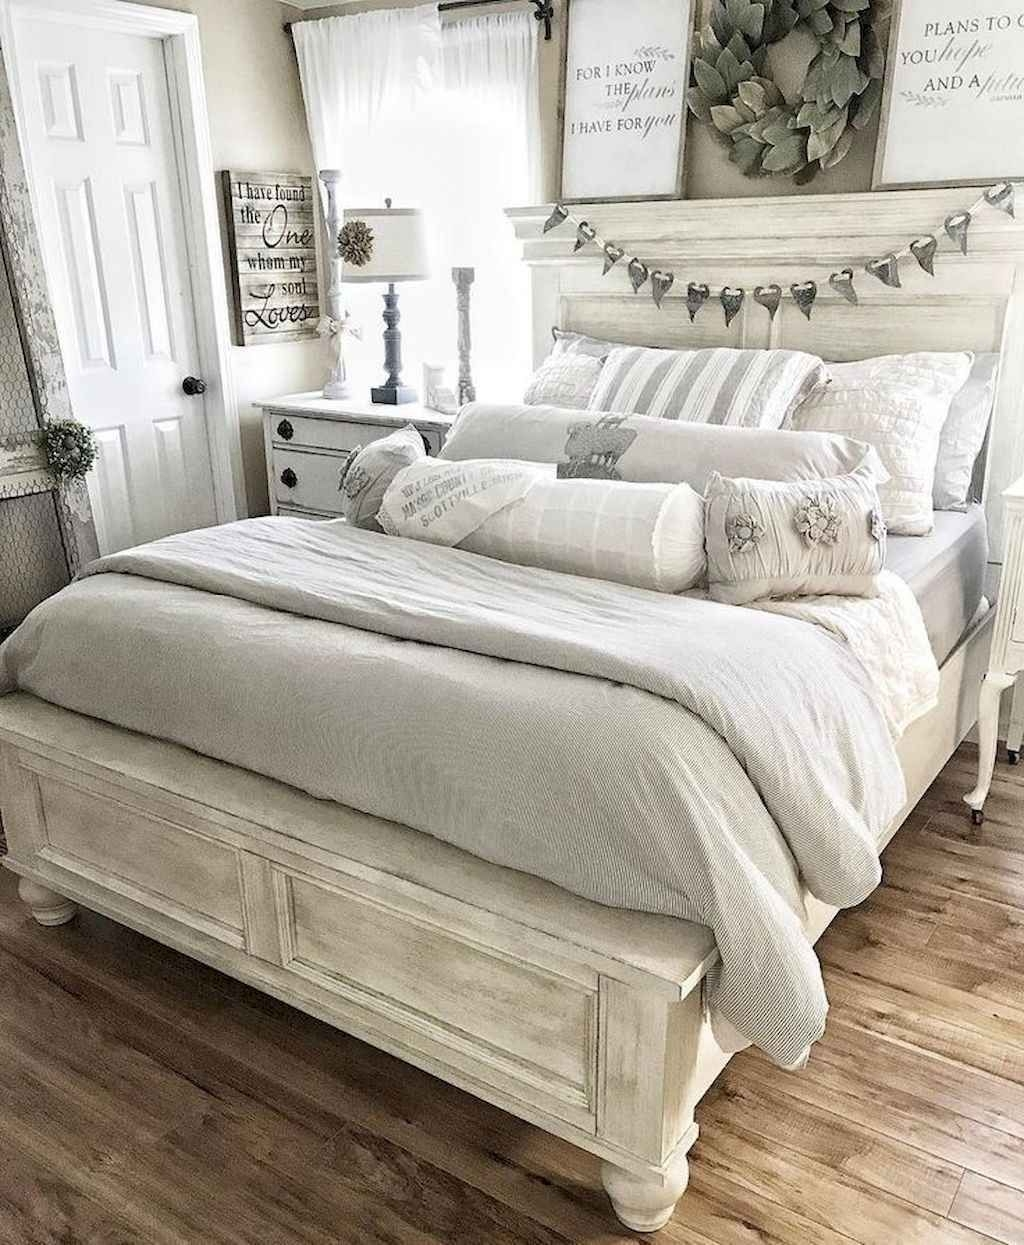 Magnificient Farmhouse Bedroom Decor Ideas To Try Now38